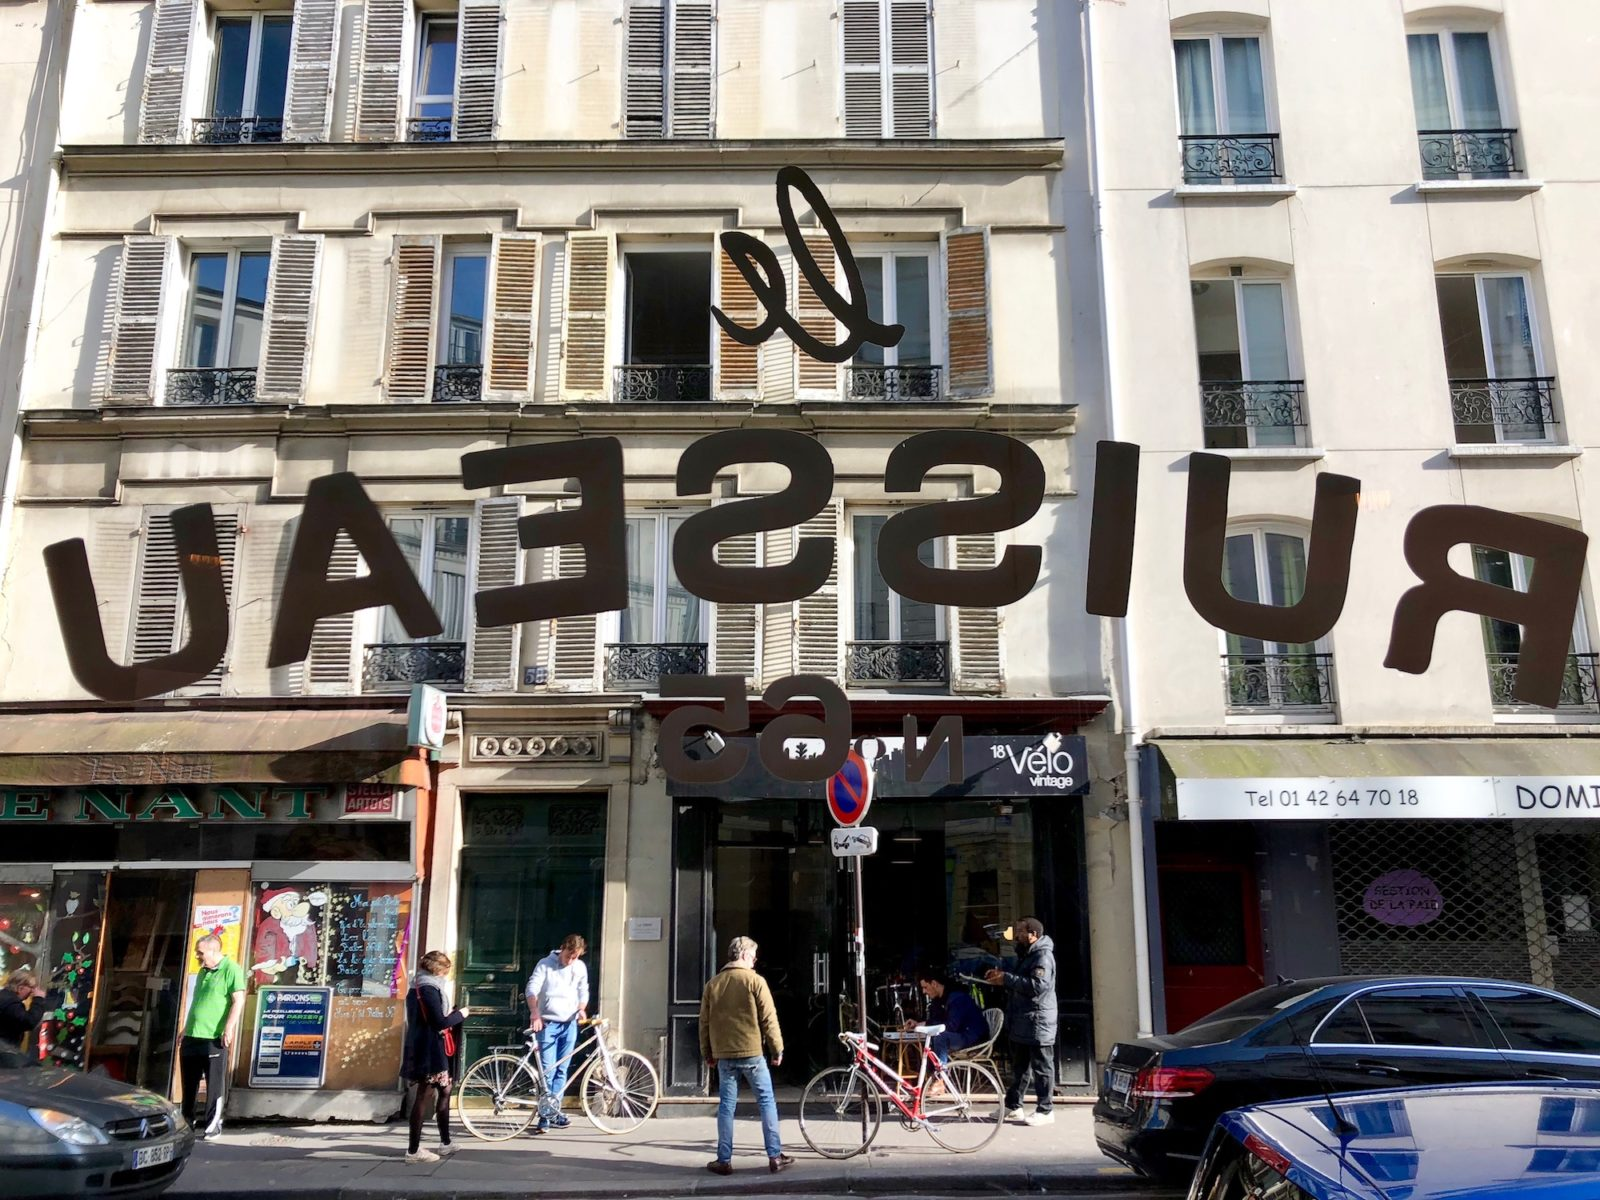 One of the best places to go for a burger in Paris is Le Ruisseau in the 18th neighborhood, where its name is splashed across the window, which looks out onto shops and bars across the road.